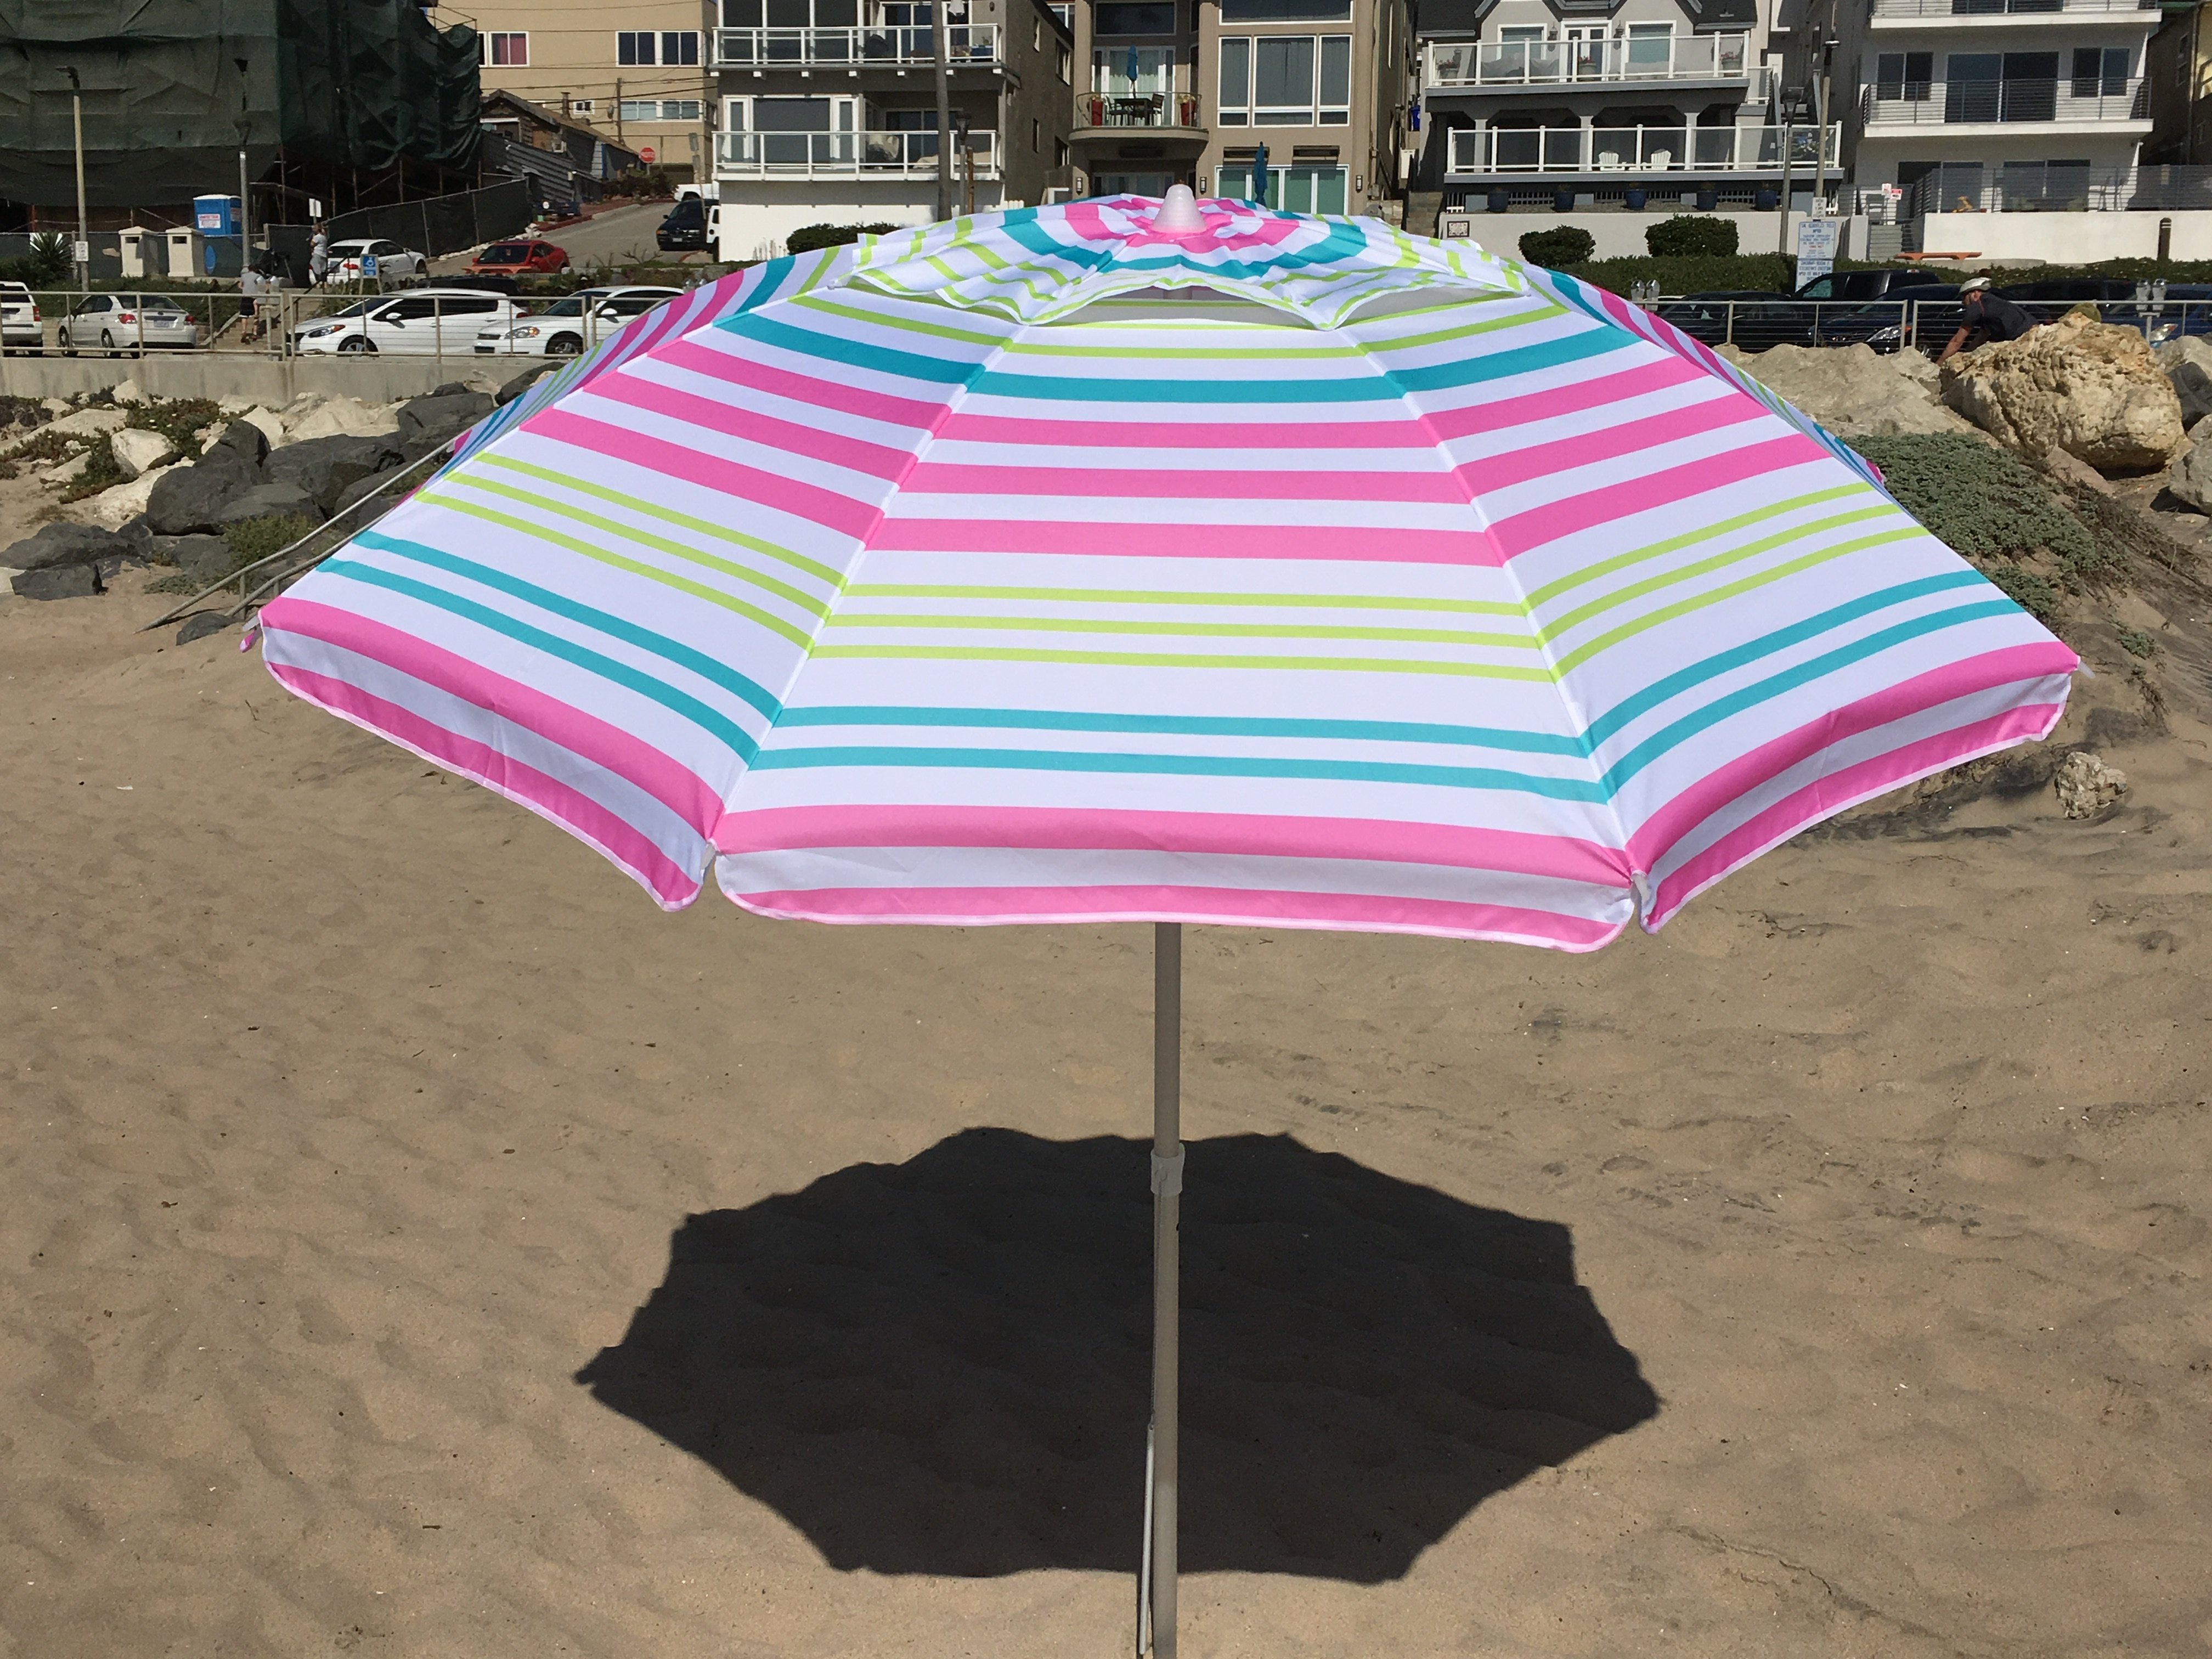 7' Beach Umbrella For Most Up To Date Schroeder Heavy Duty Beach Umbrellas (Gallery 6 of 20)